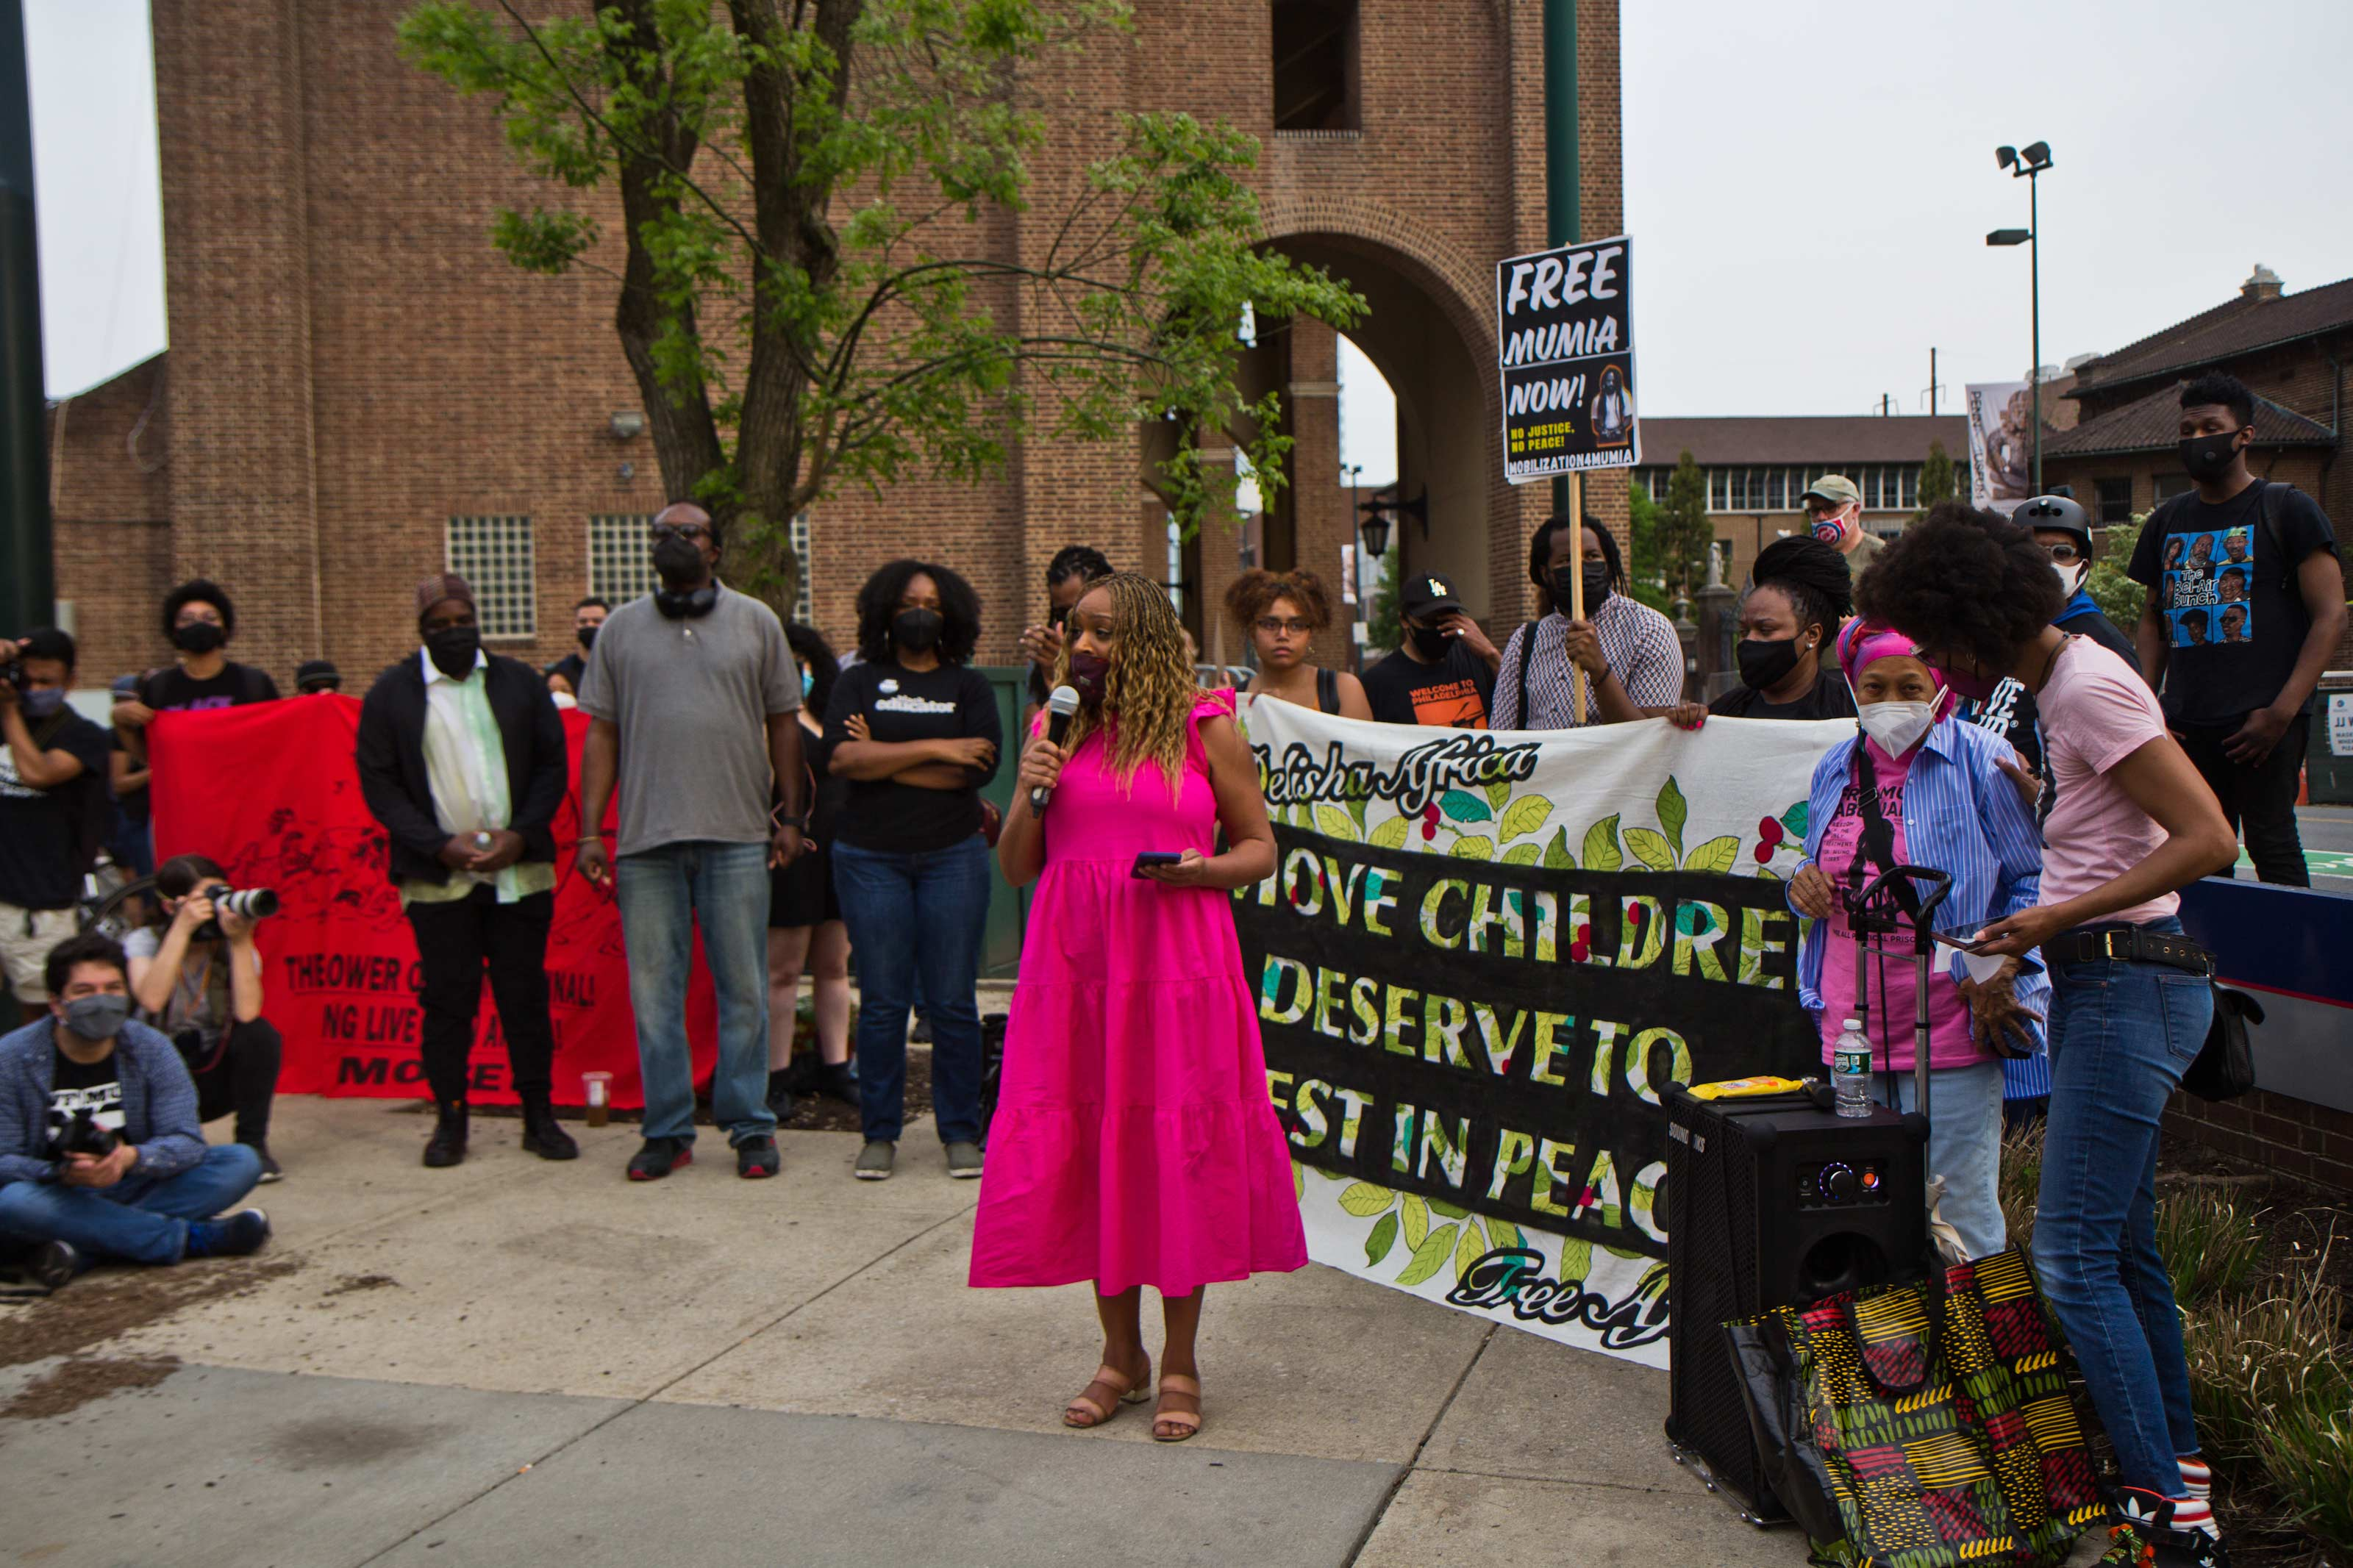 Councilmember Jamie Gauthier joined protesters outside the Penn Museum on April 28, 2021. (Kimberly Paynter/WHYY)